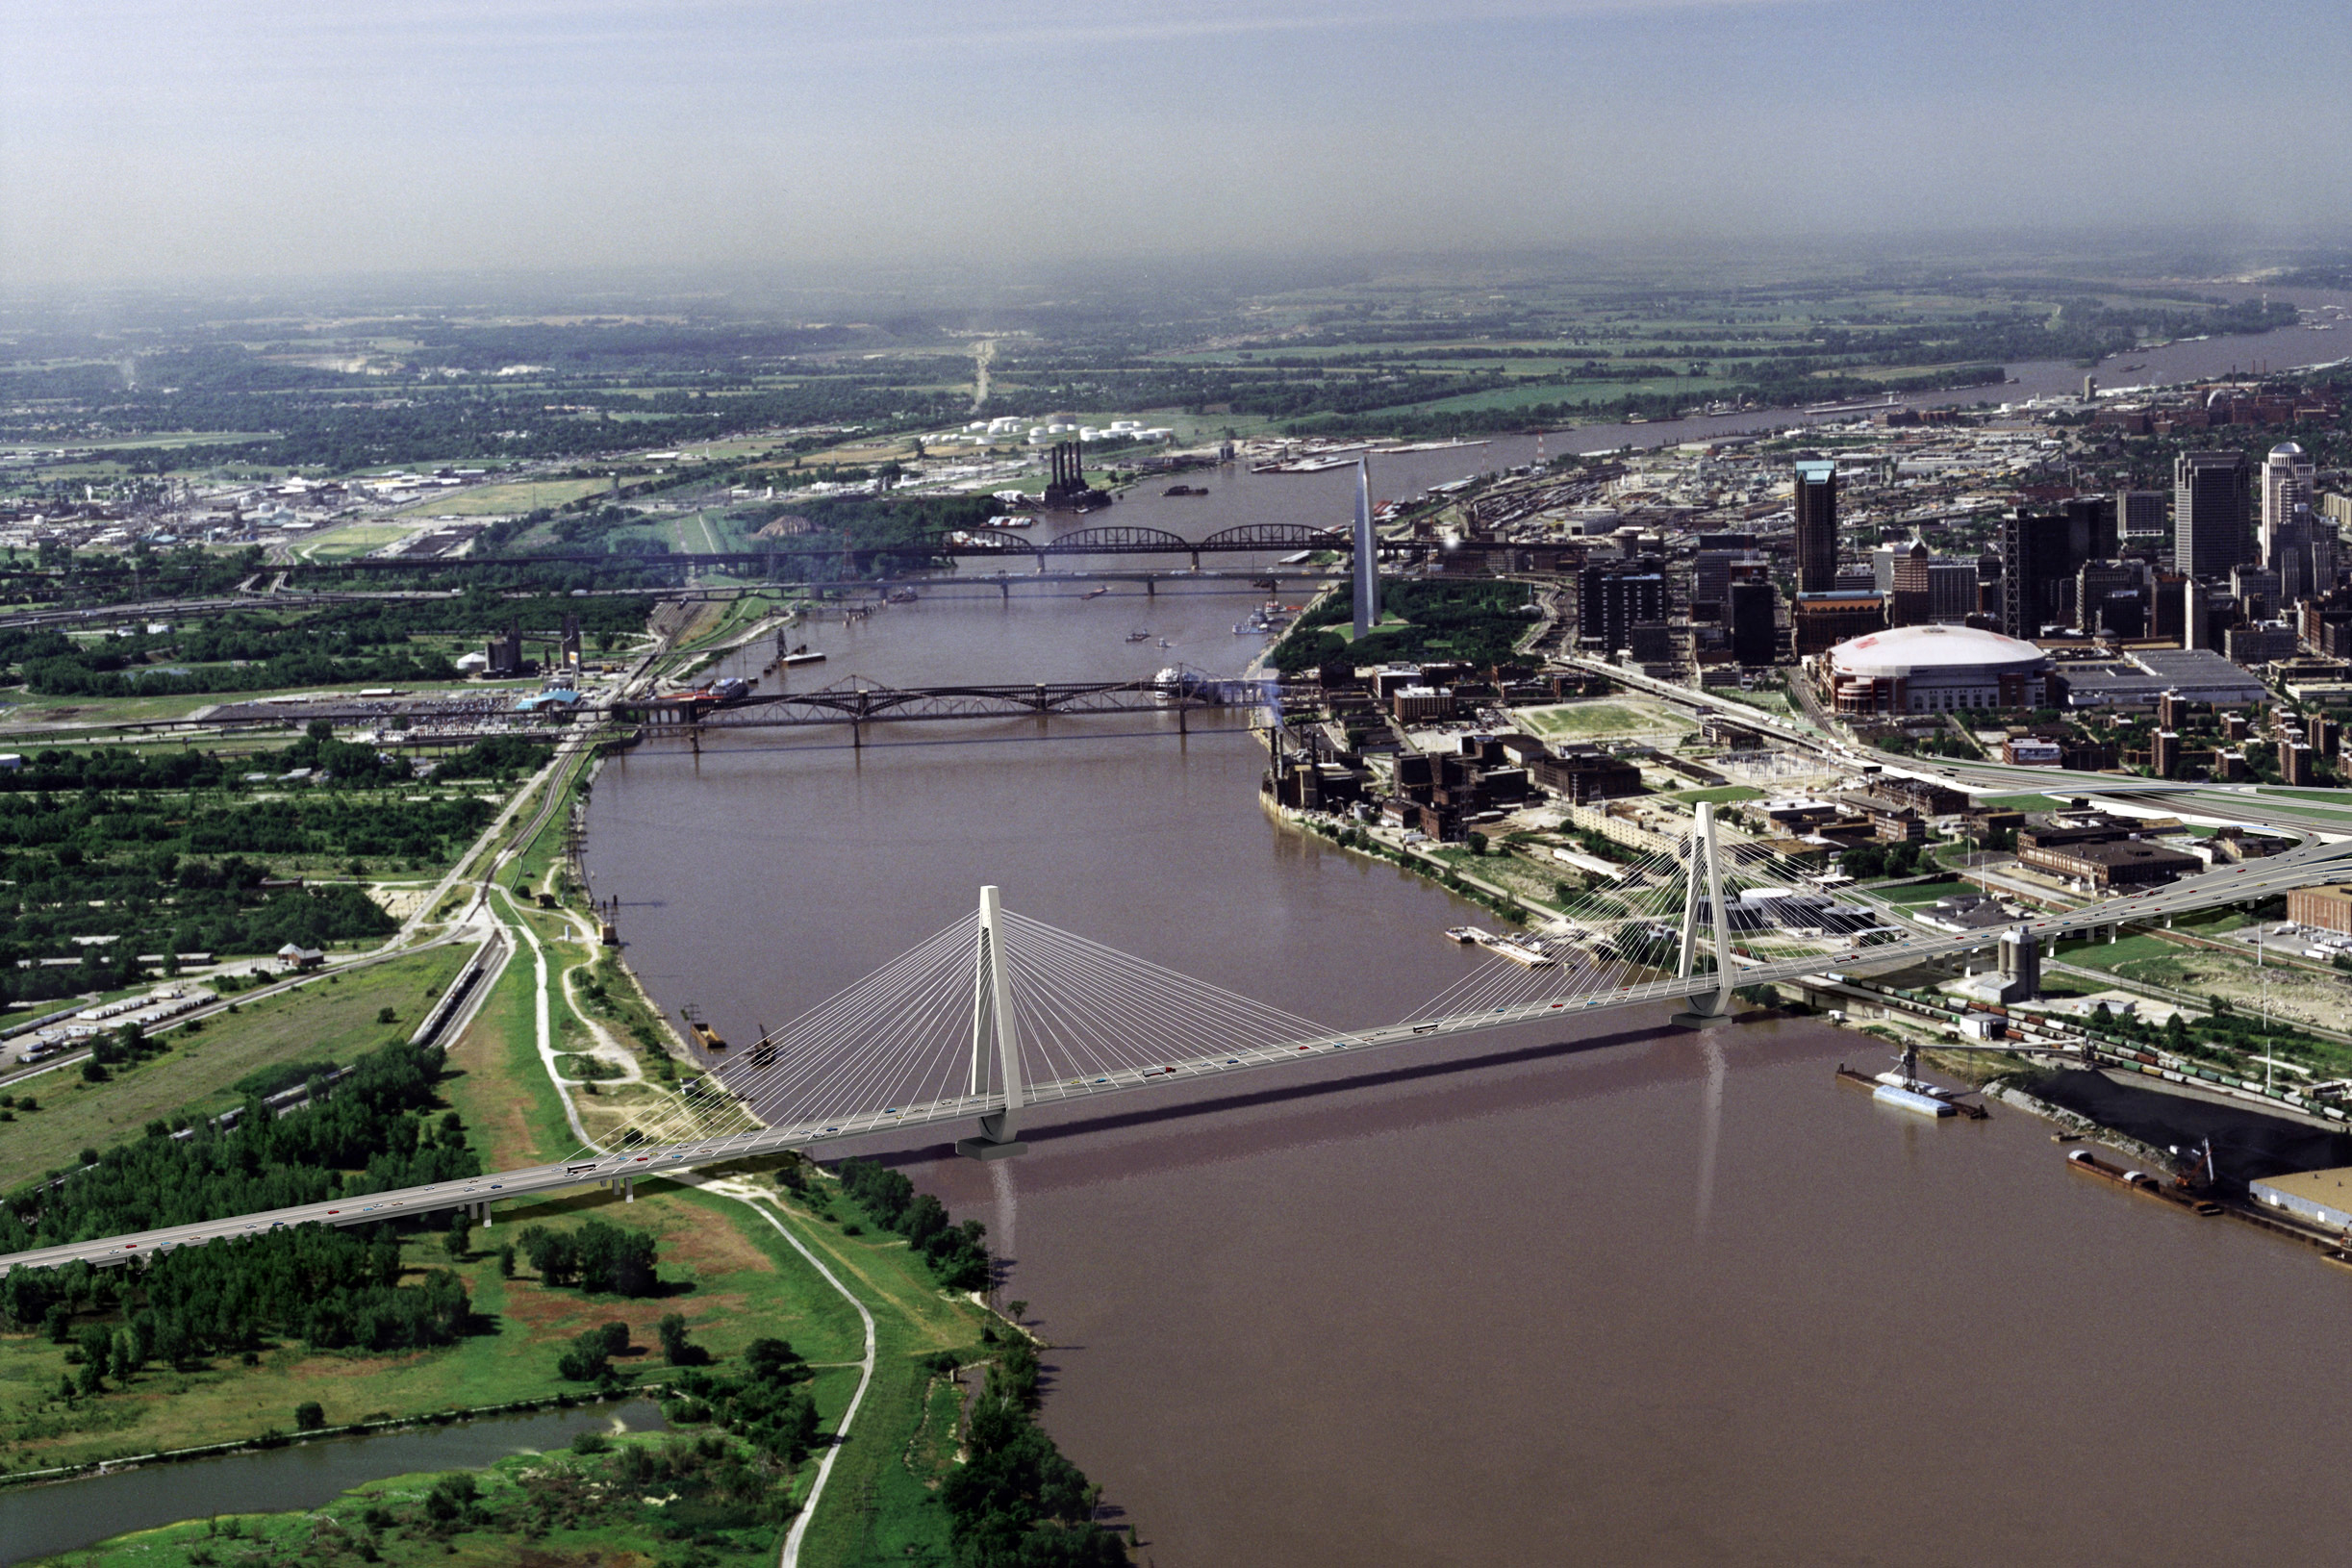 3D Rendering of the New Mississippi River Bridge